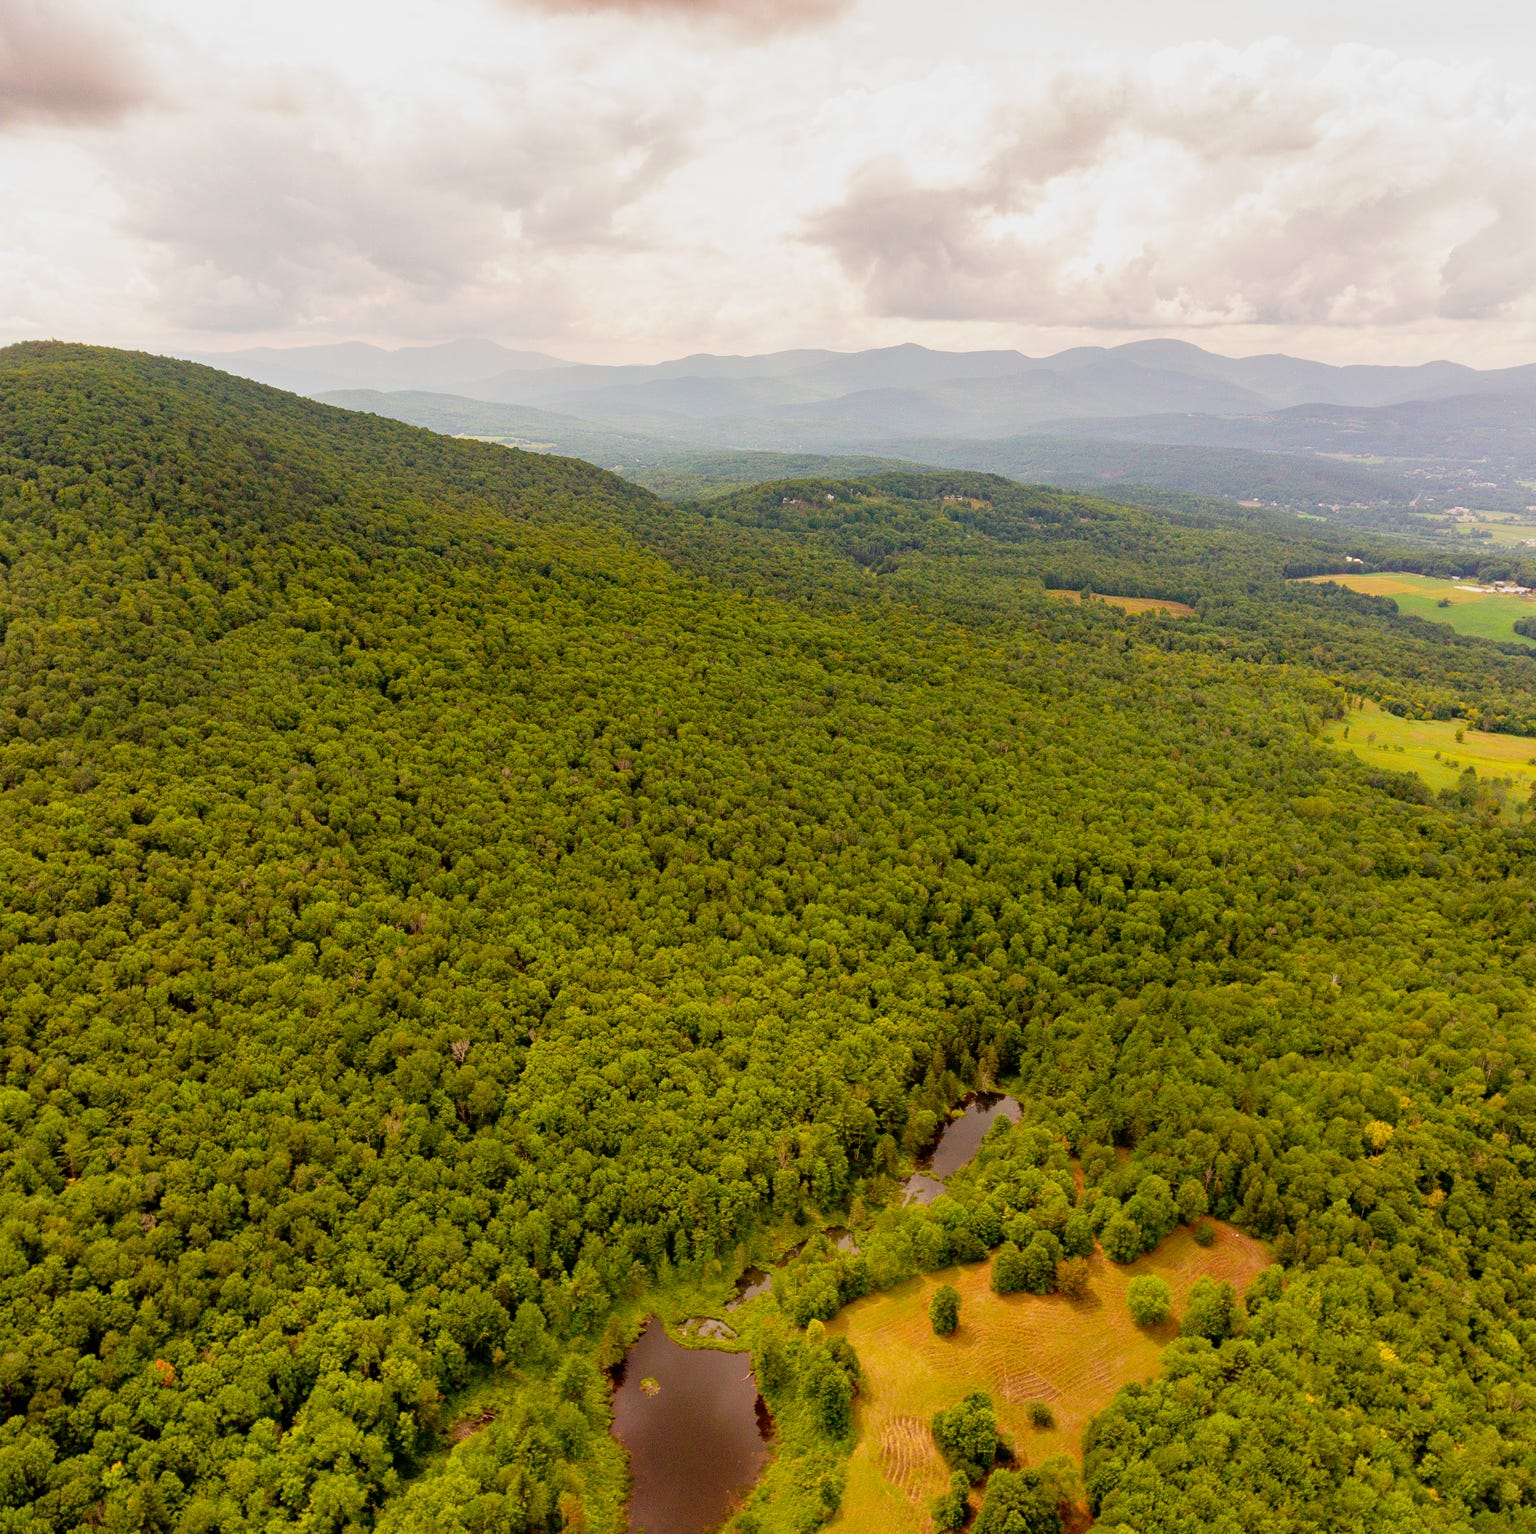 Land trust set to buy 750 acres in Stowe after anonymous $5 million gift